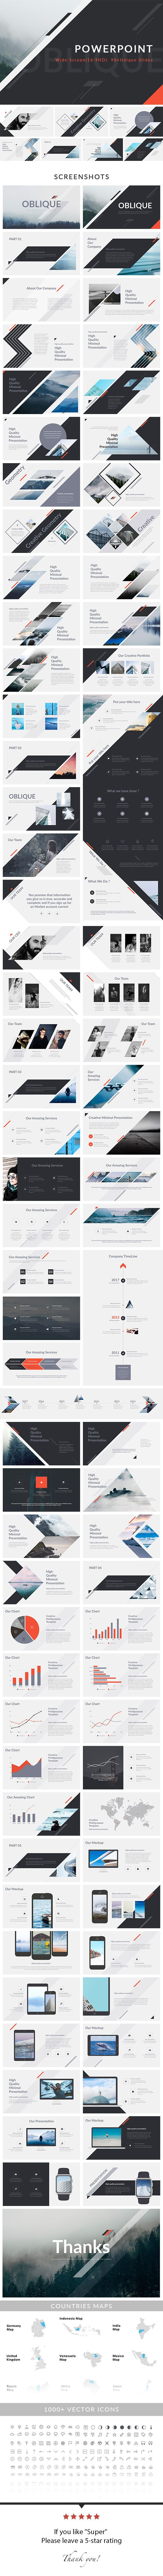 Oblique - PowerPoint Presentation Template